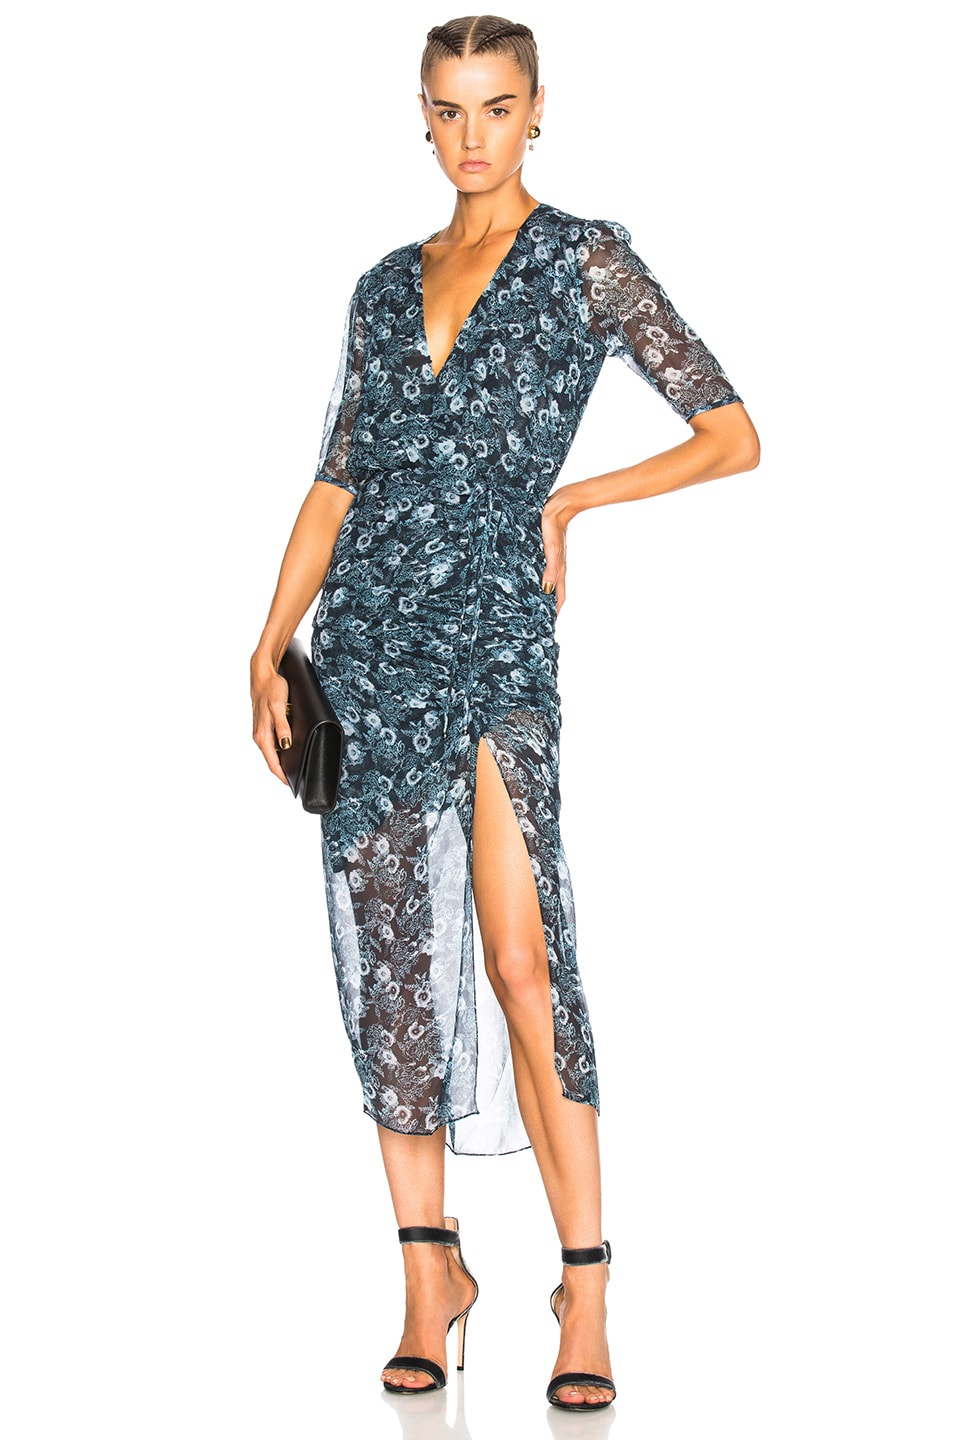 VERONICA BEARD MARIPOSA DRESS IN ABSTRACT,BLUE